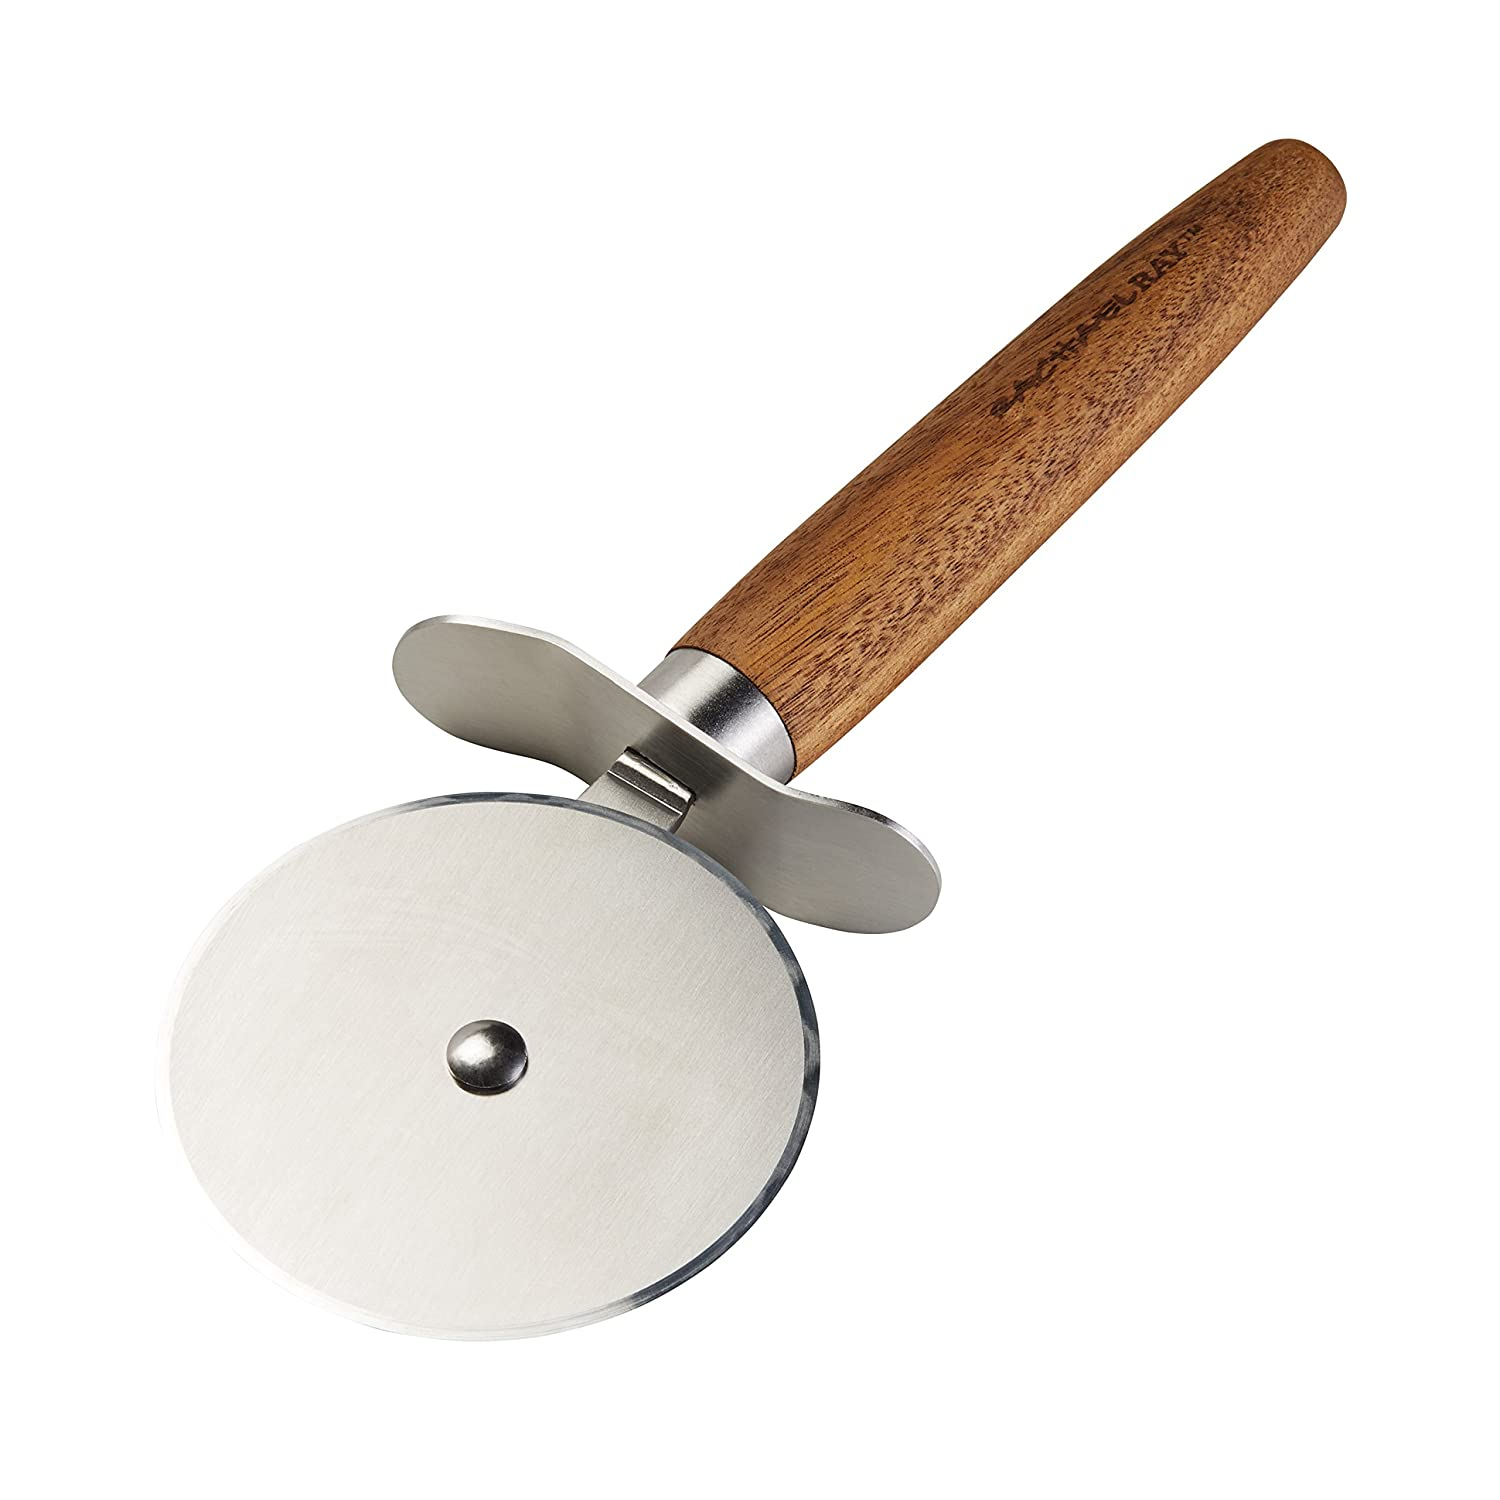 Rachael Ray Cucina Stainless Steel Pizza Cutter/Pizza Wheel, Acacia Wood Handle 46644